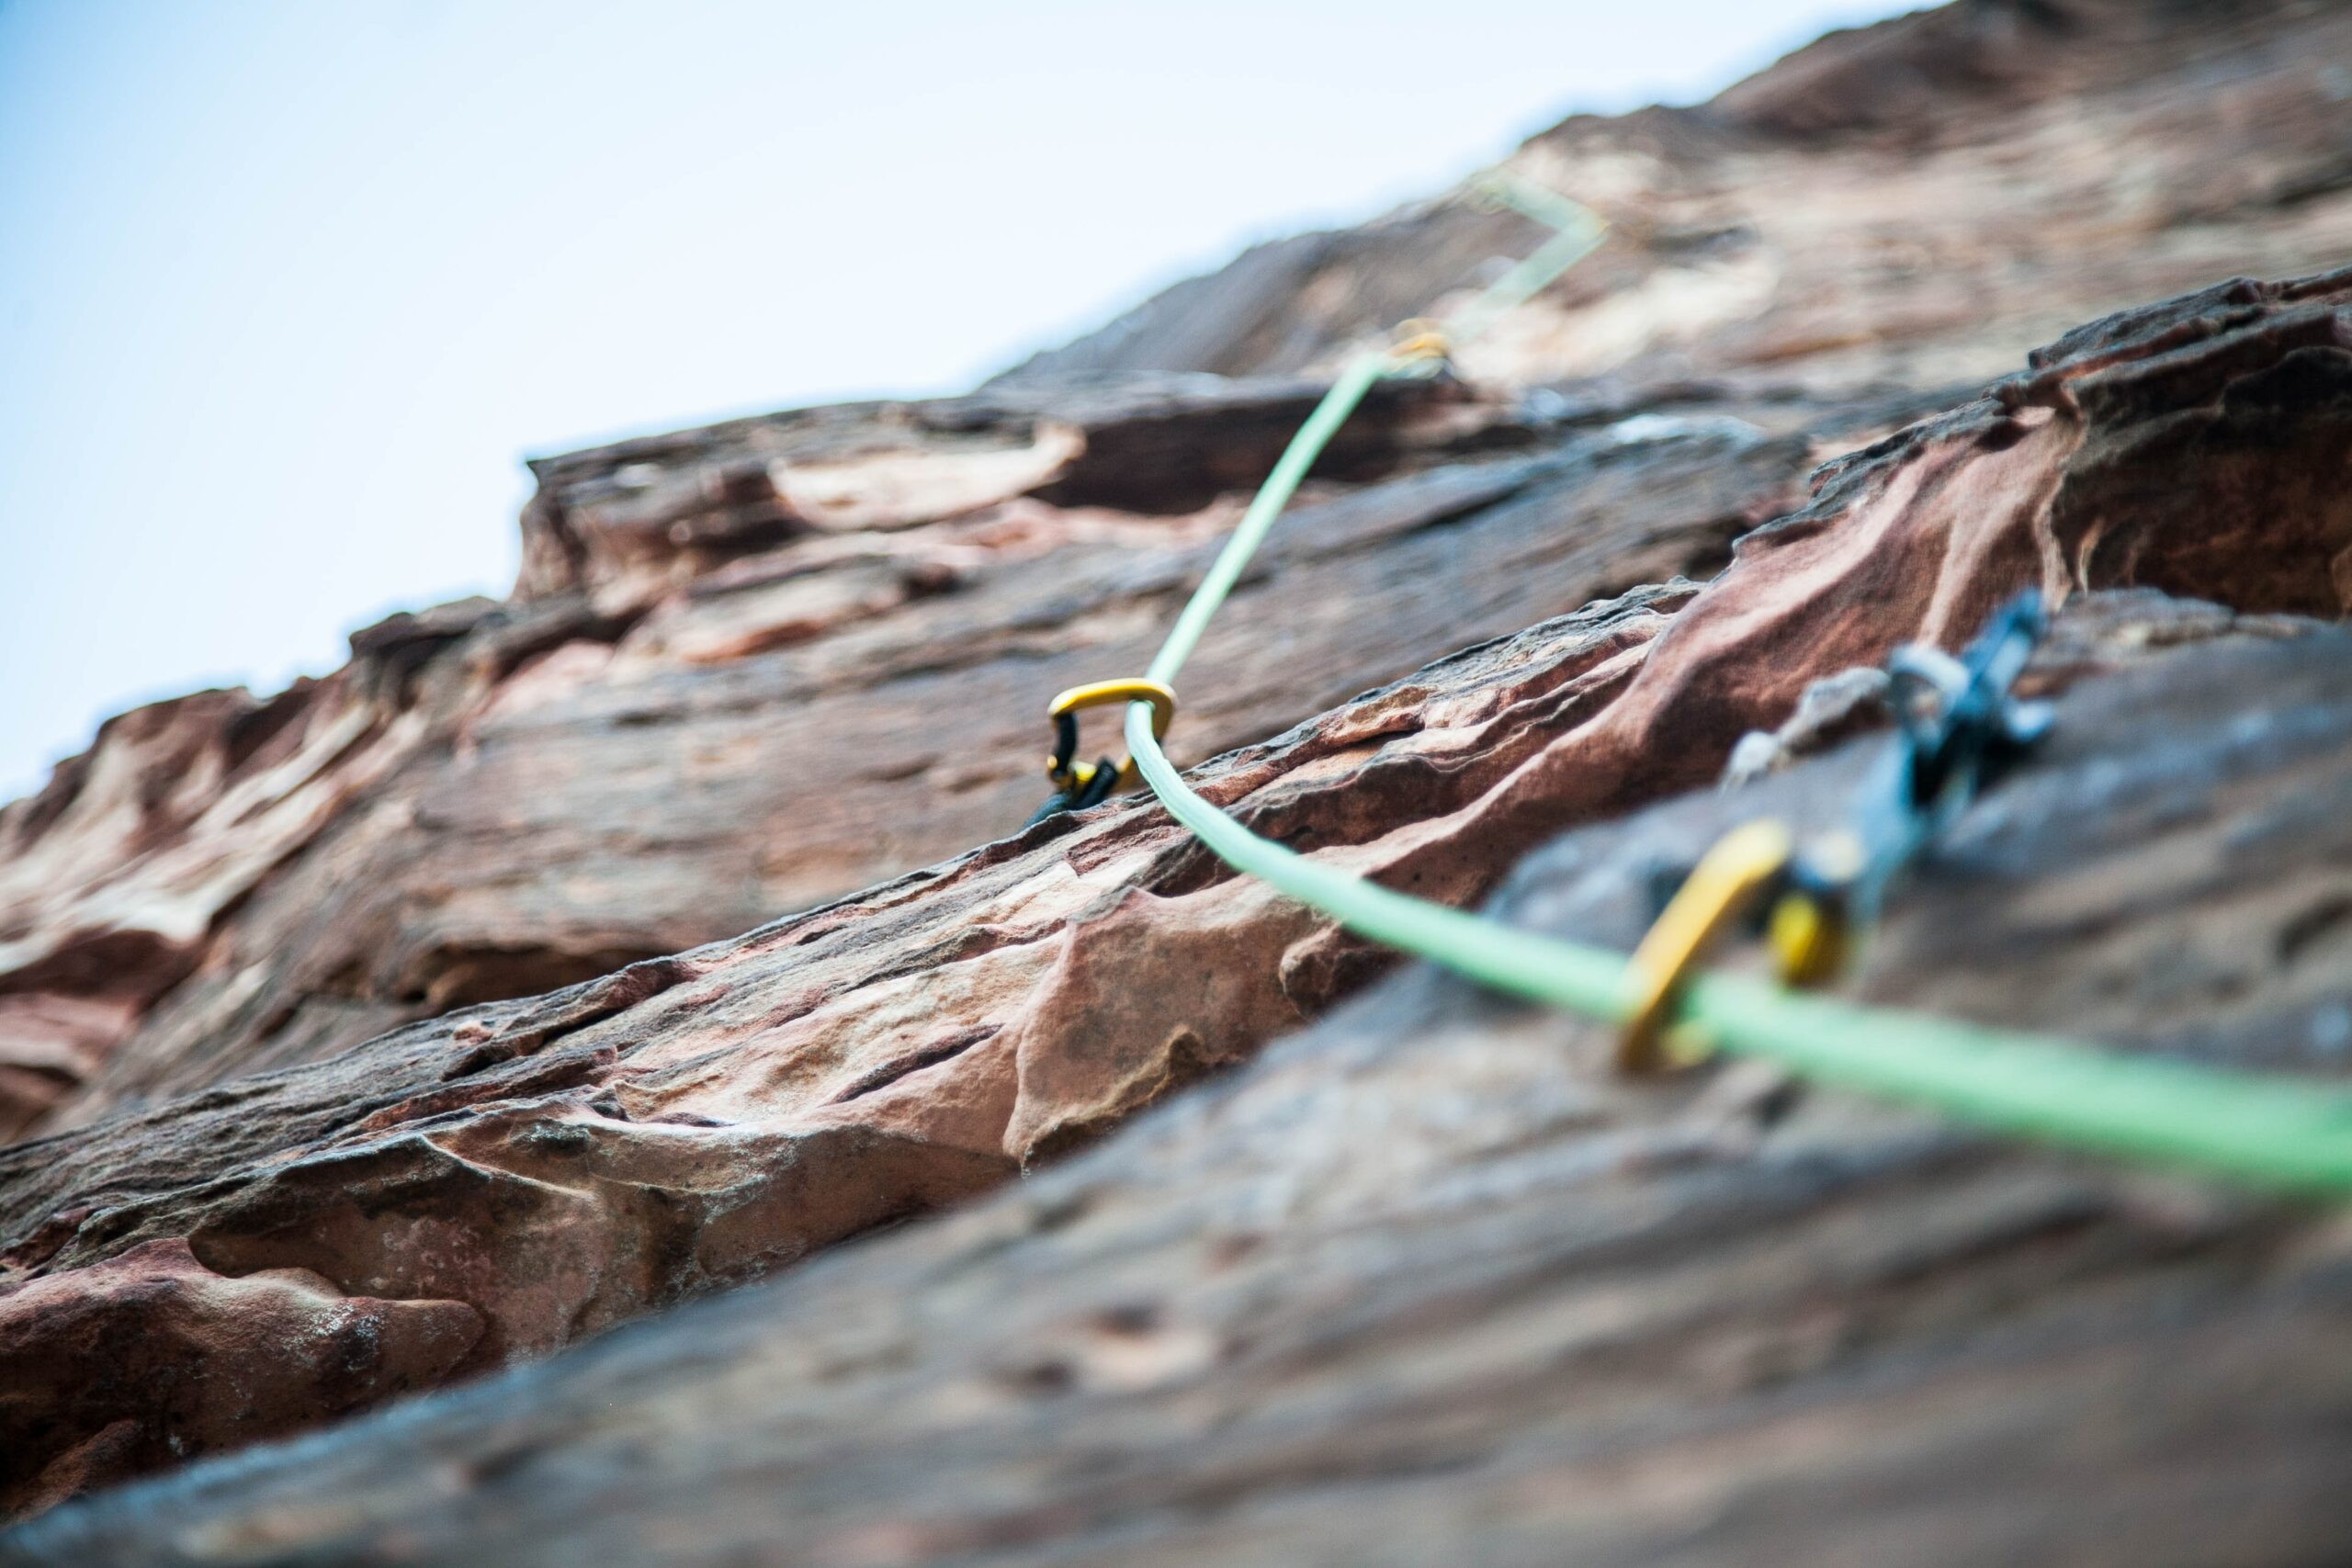 Climbing rope on cliff